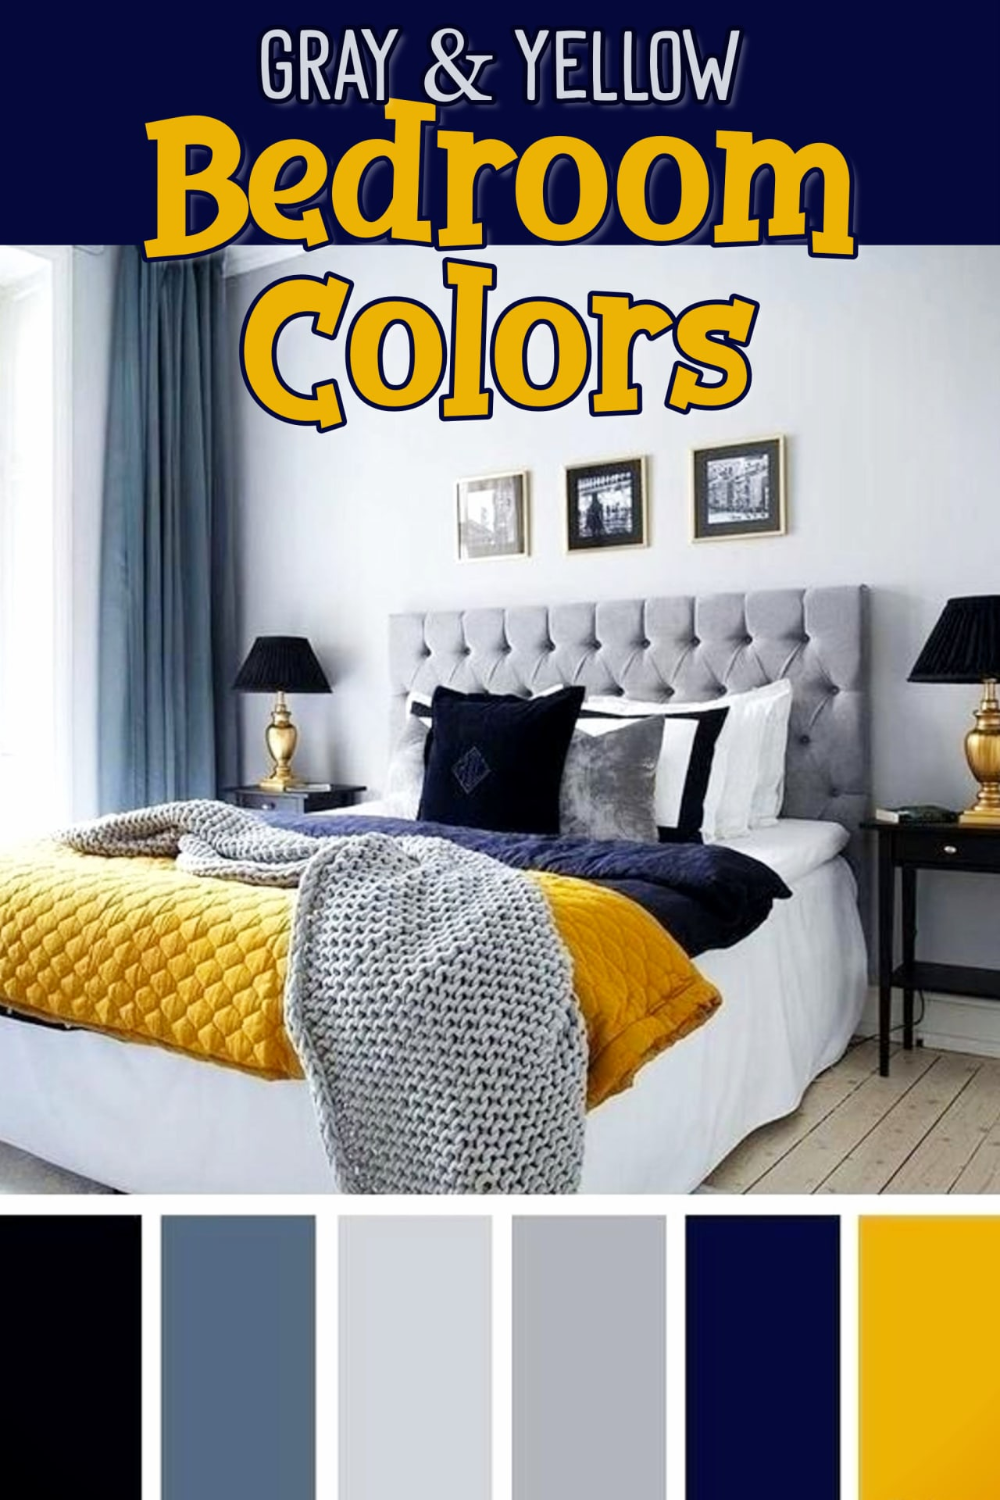 Gray And Yellow Bedroom Ideas Yellow And Grey Bedding Accent Colors Bedroom Decor Ideas Clever Diy Ideas Yellow Bedroom Decor Blue Yellow Bedrooms Yellow Gray Bedroom